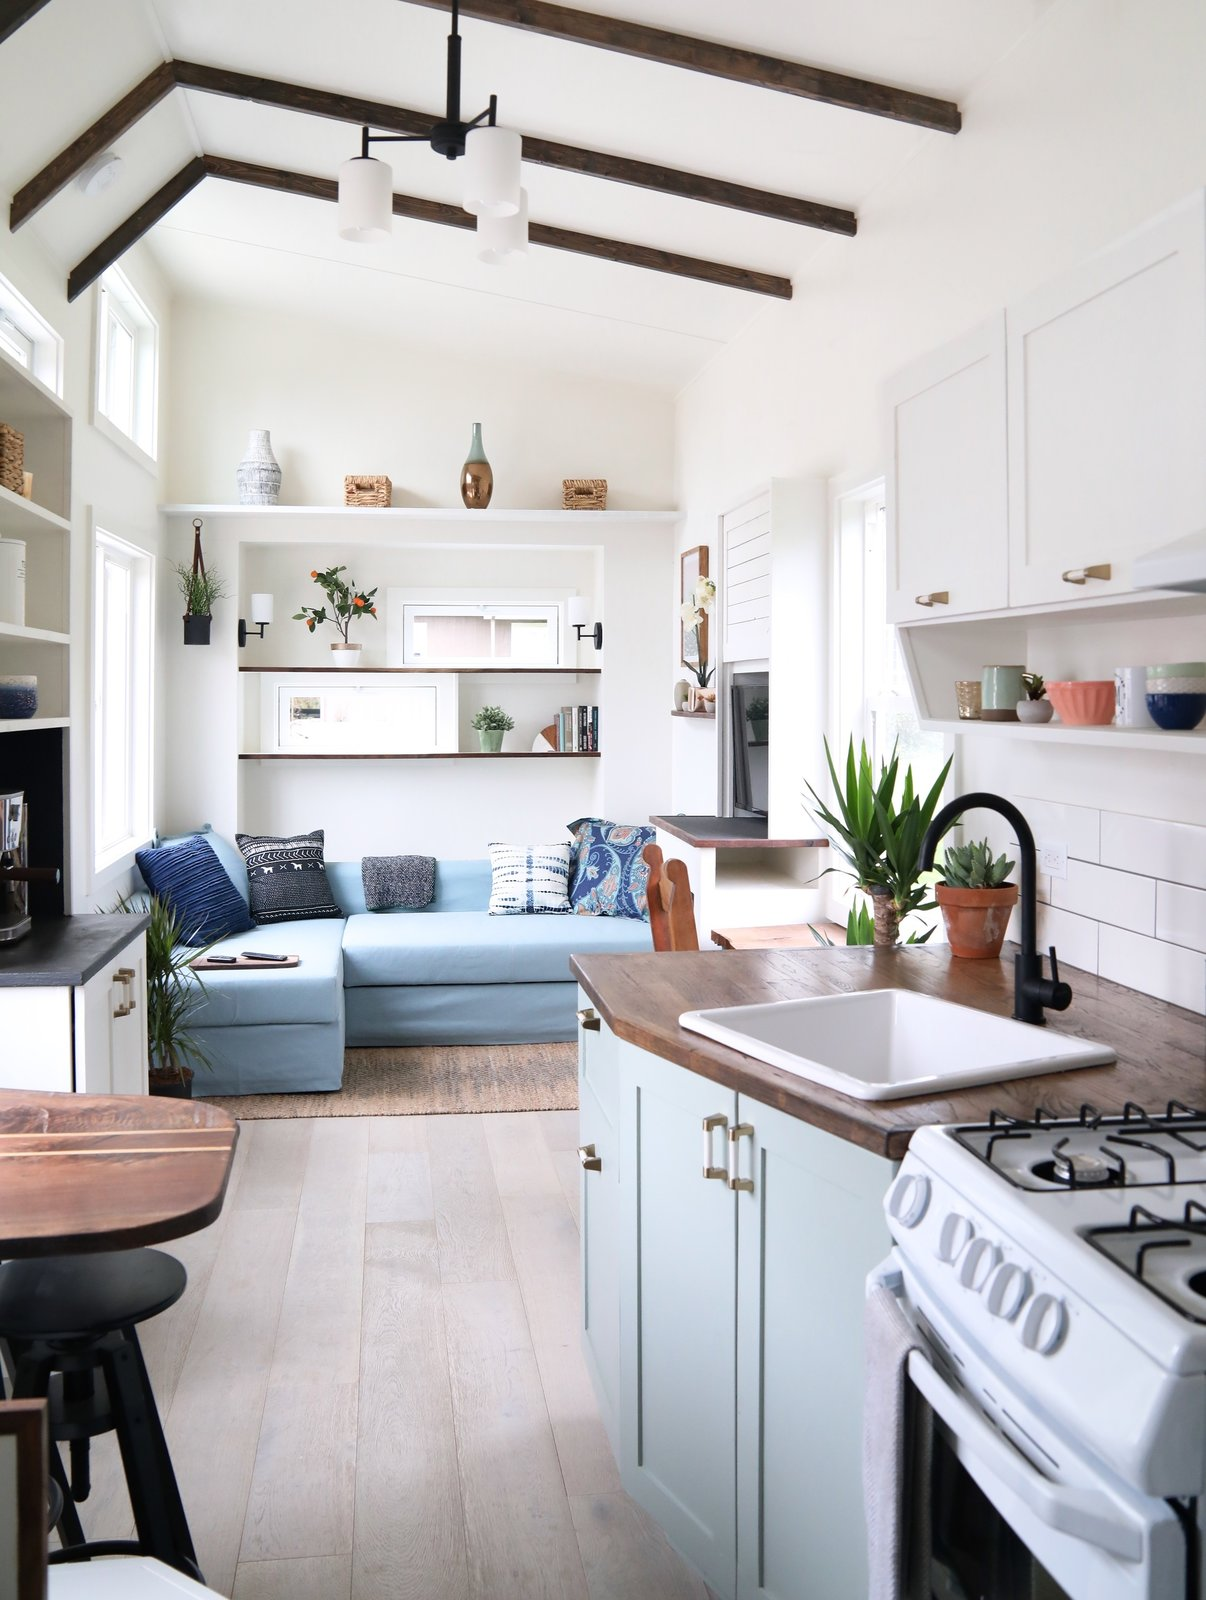 This Tiny Trailer Home Boasts Soothing Beach Vibes